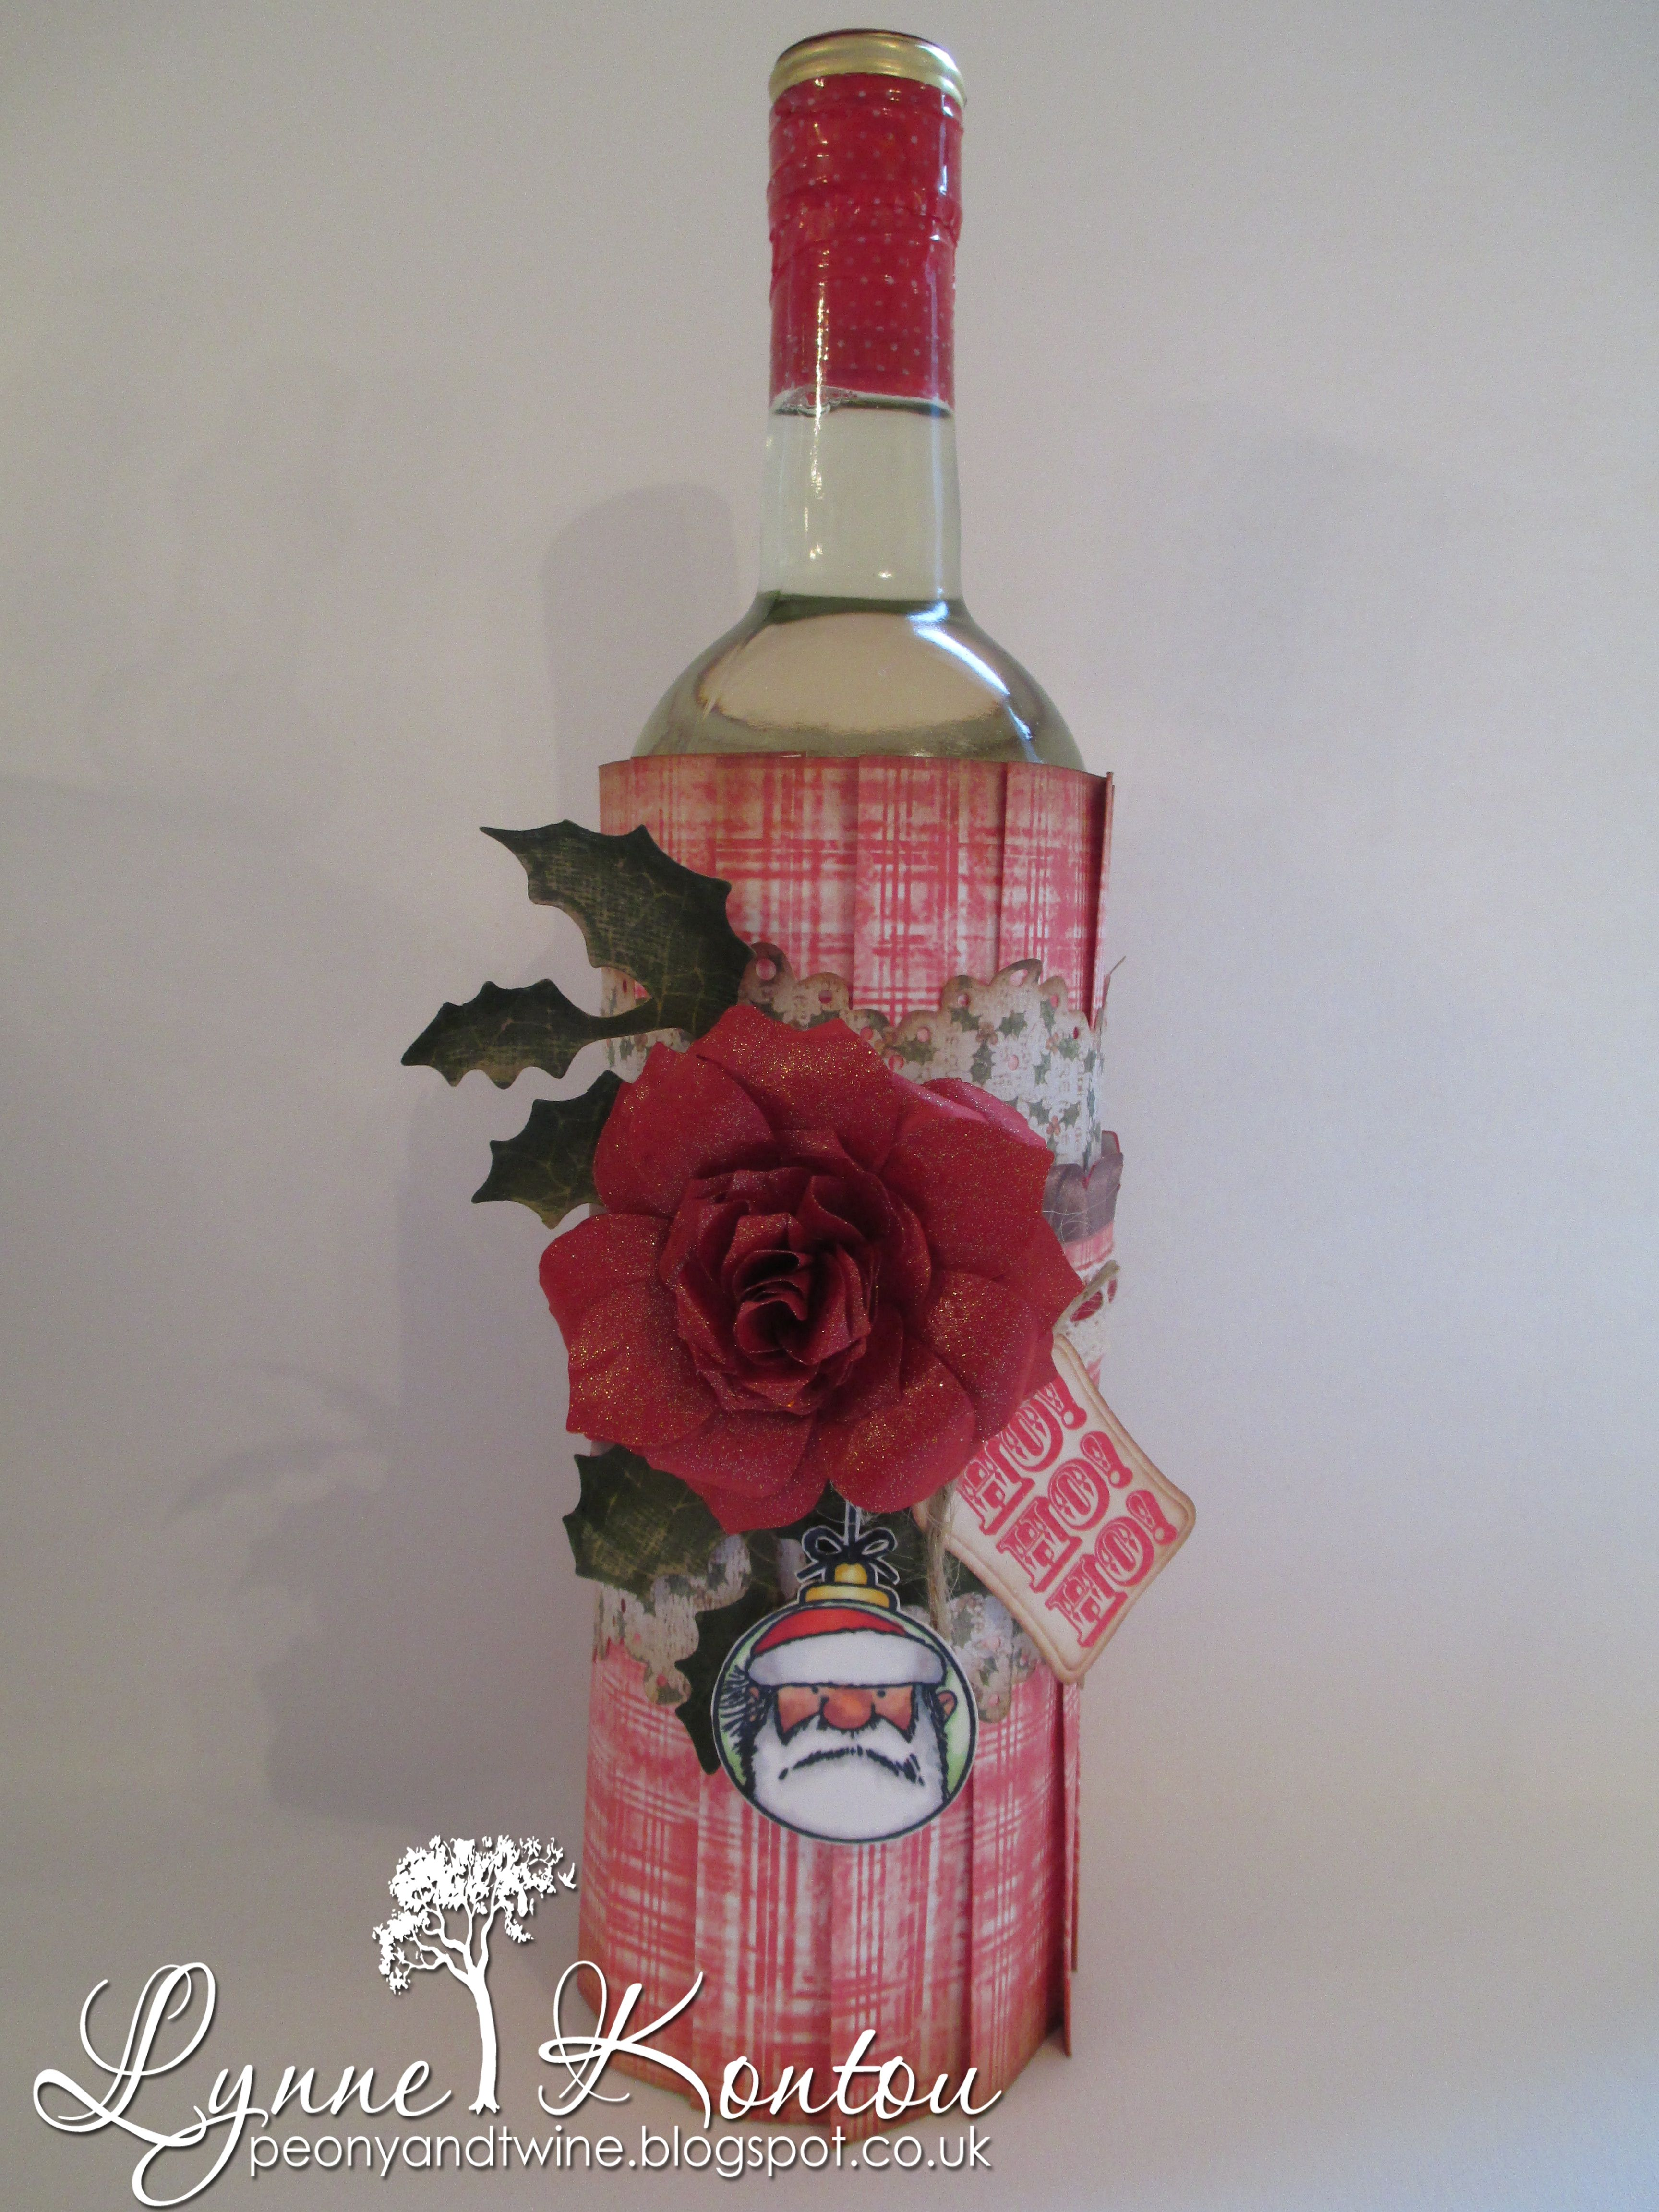 Wine Bottle Cover Die Sire Decorative Die Scalloped Tags Die Sire Border Die Lace Border 1 Christmas Gifts To Make Bottles Decoration Wine Bottle Covers